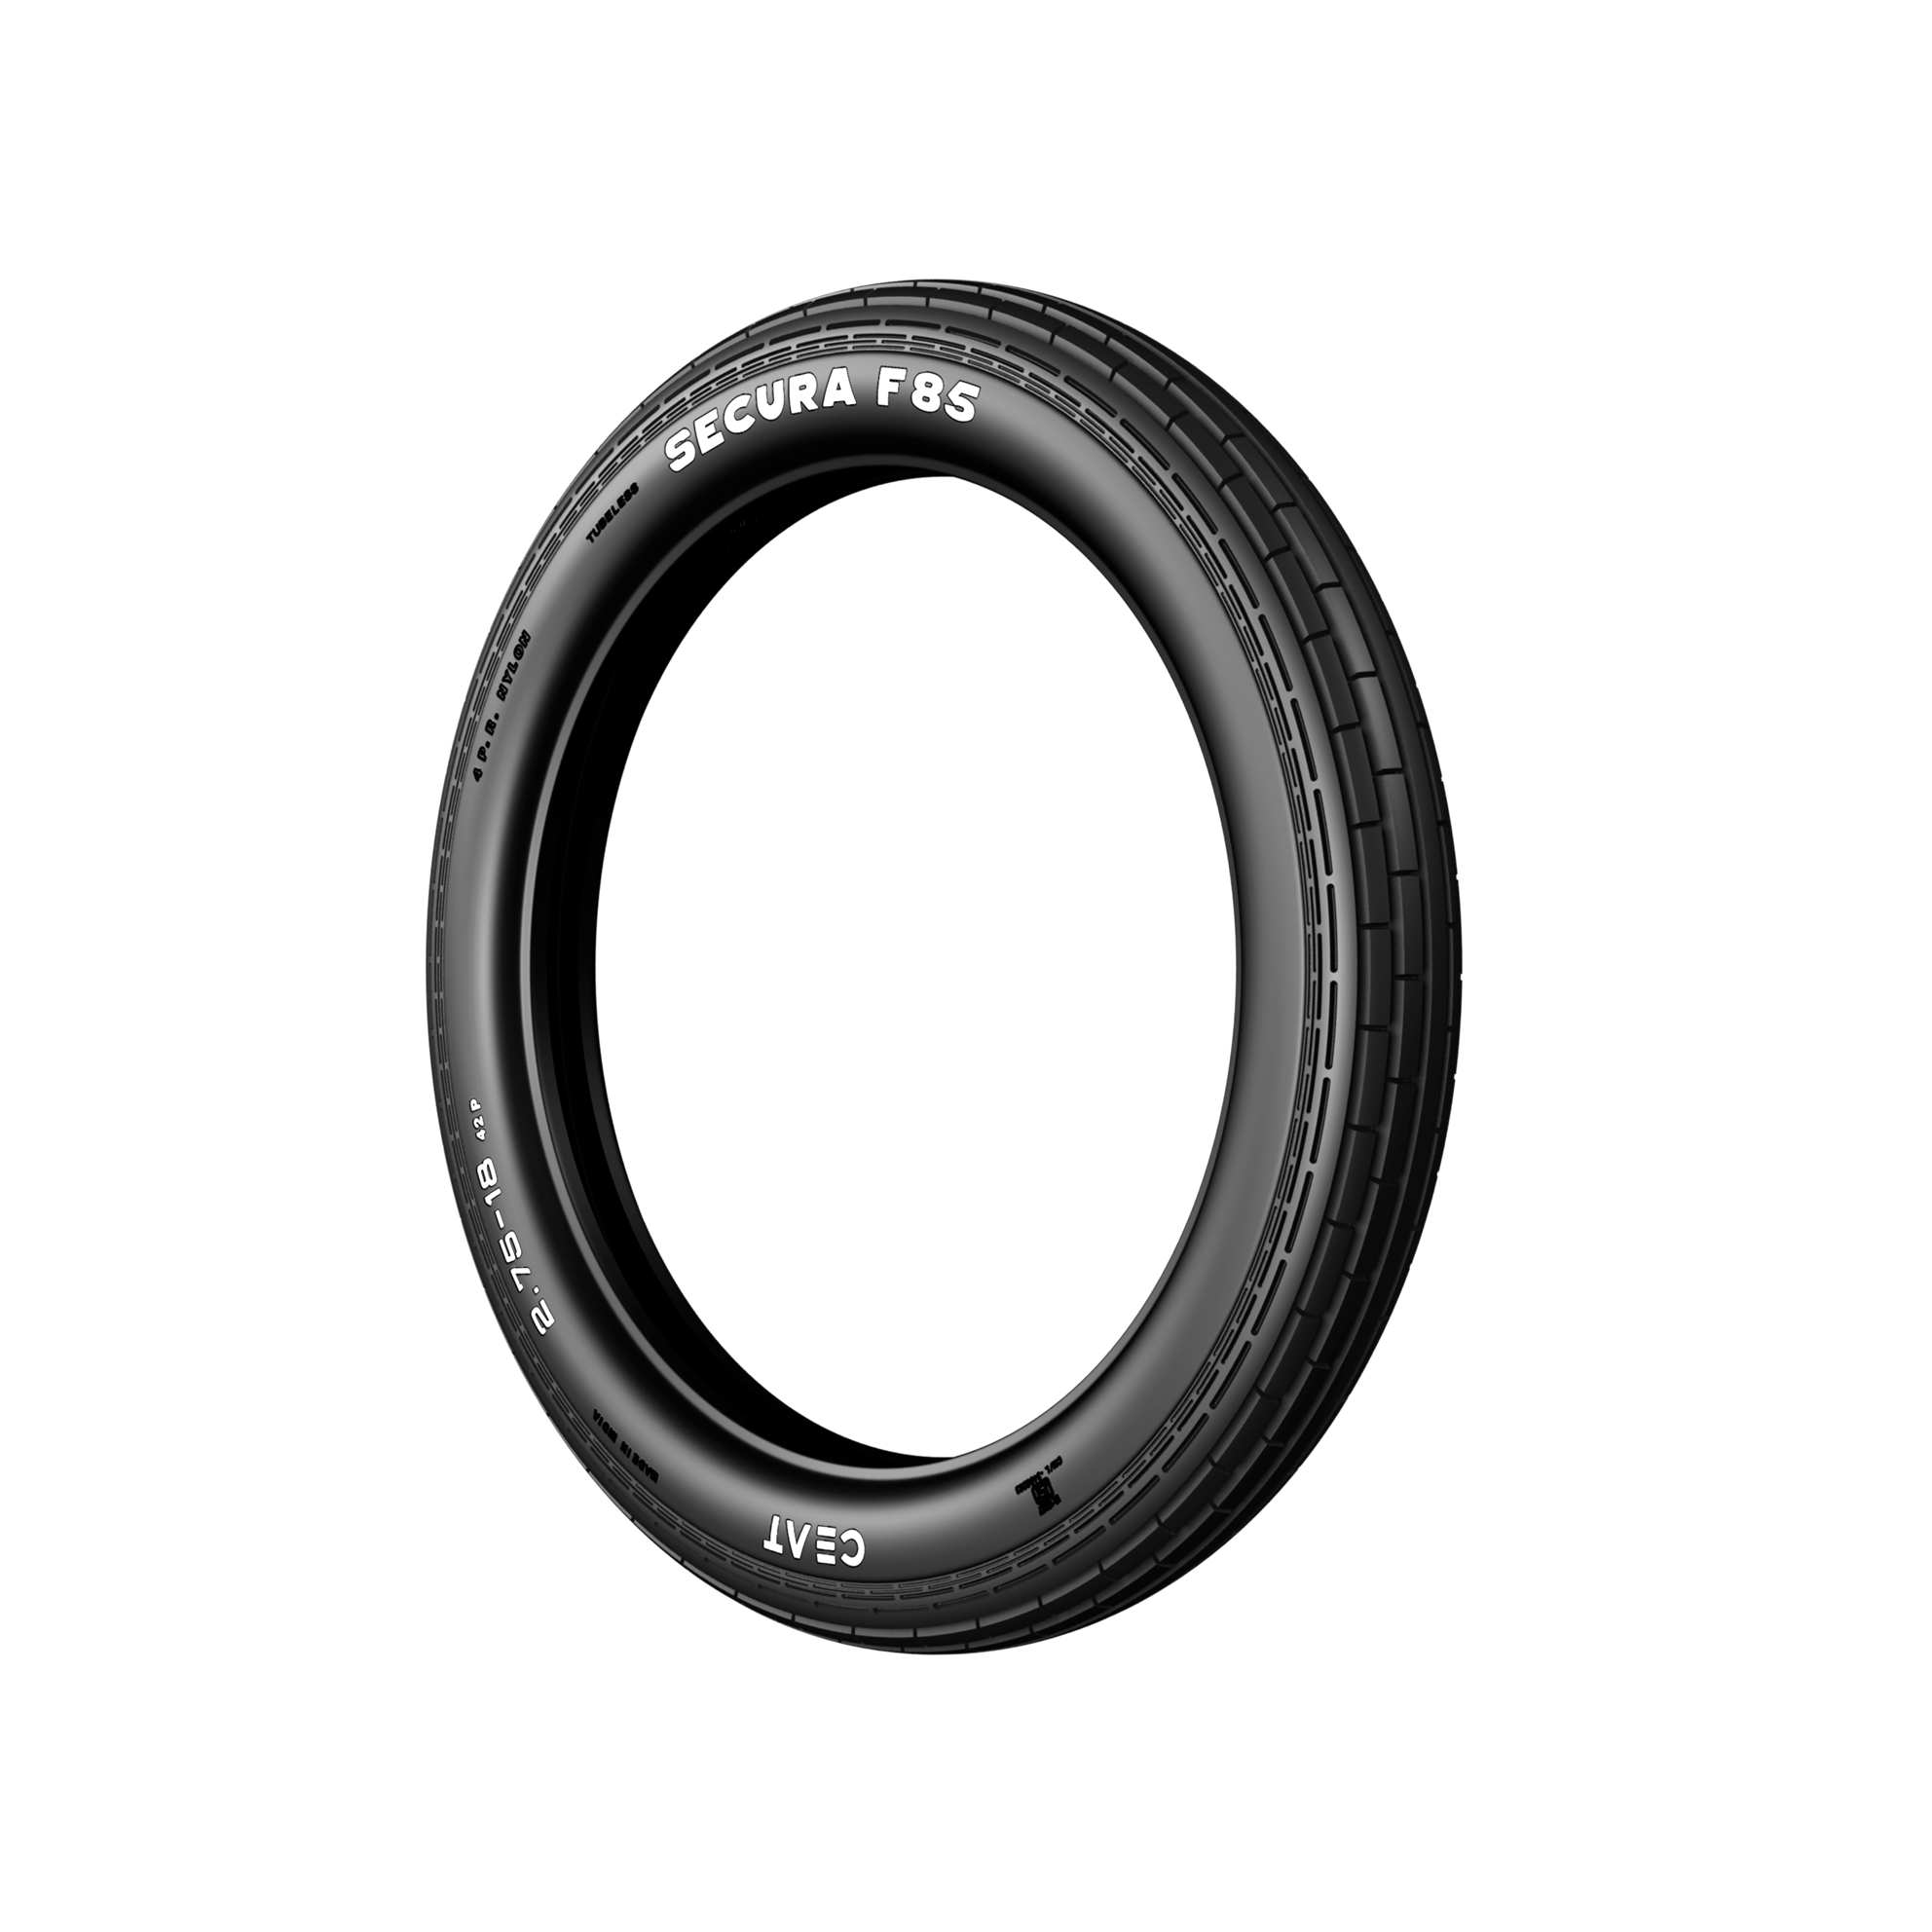 Ceat SECURA F85 2.75 R 18 Requires Tube   Front Two-Wheeler Tyre